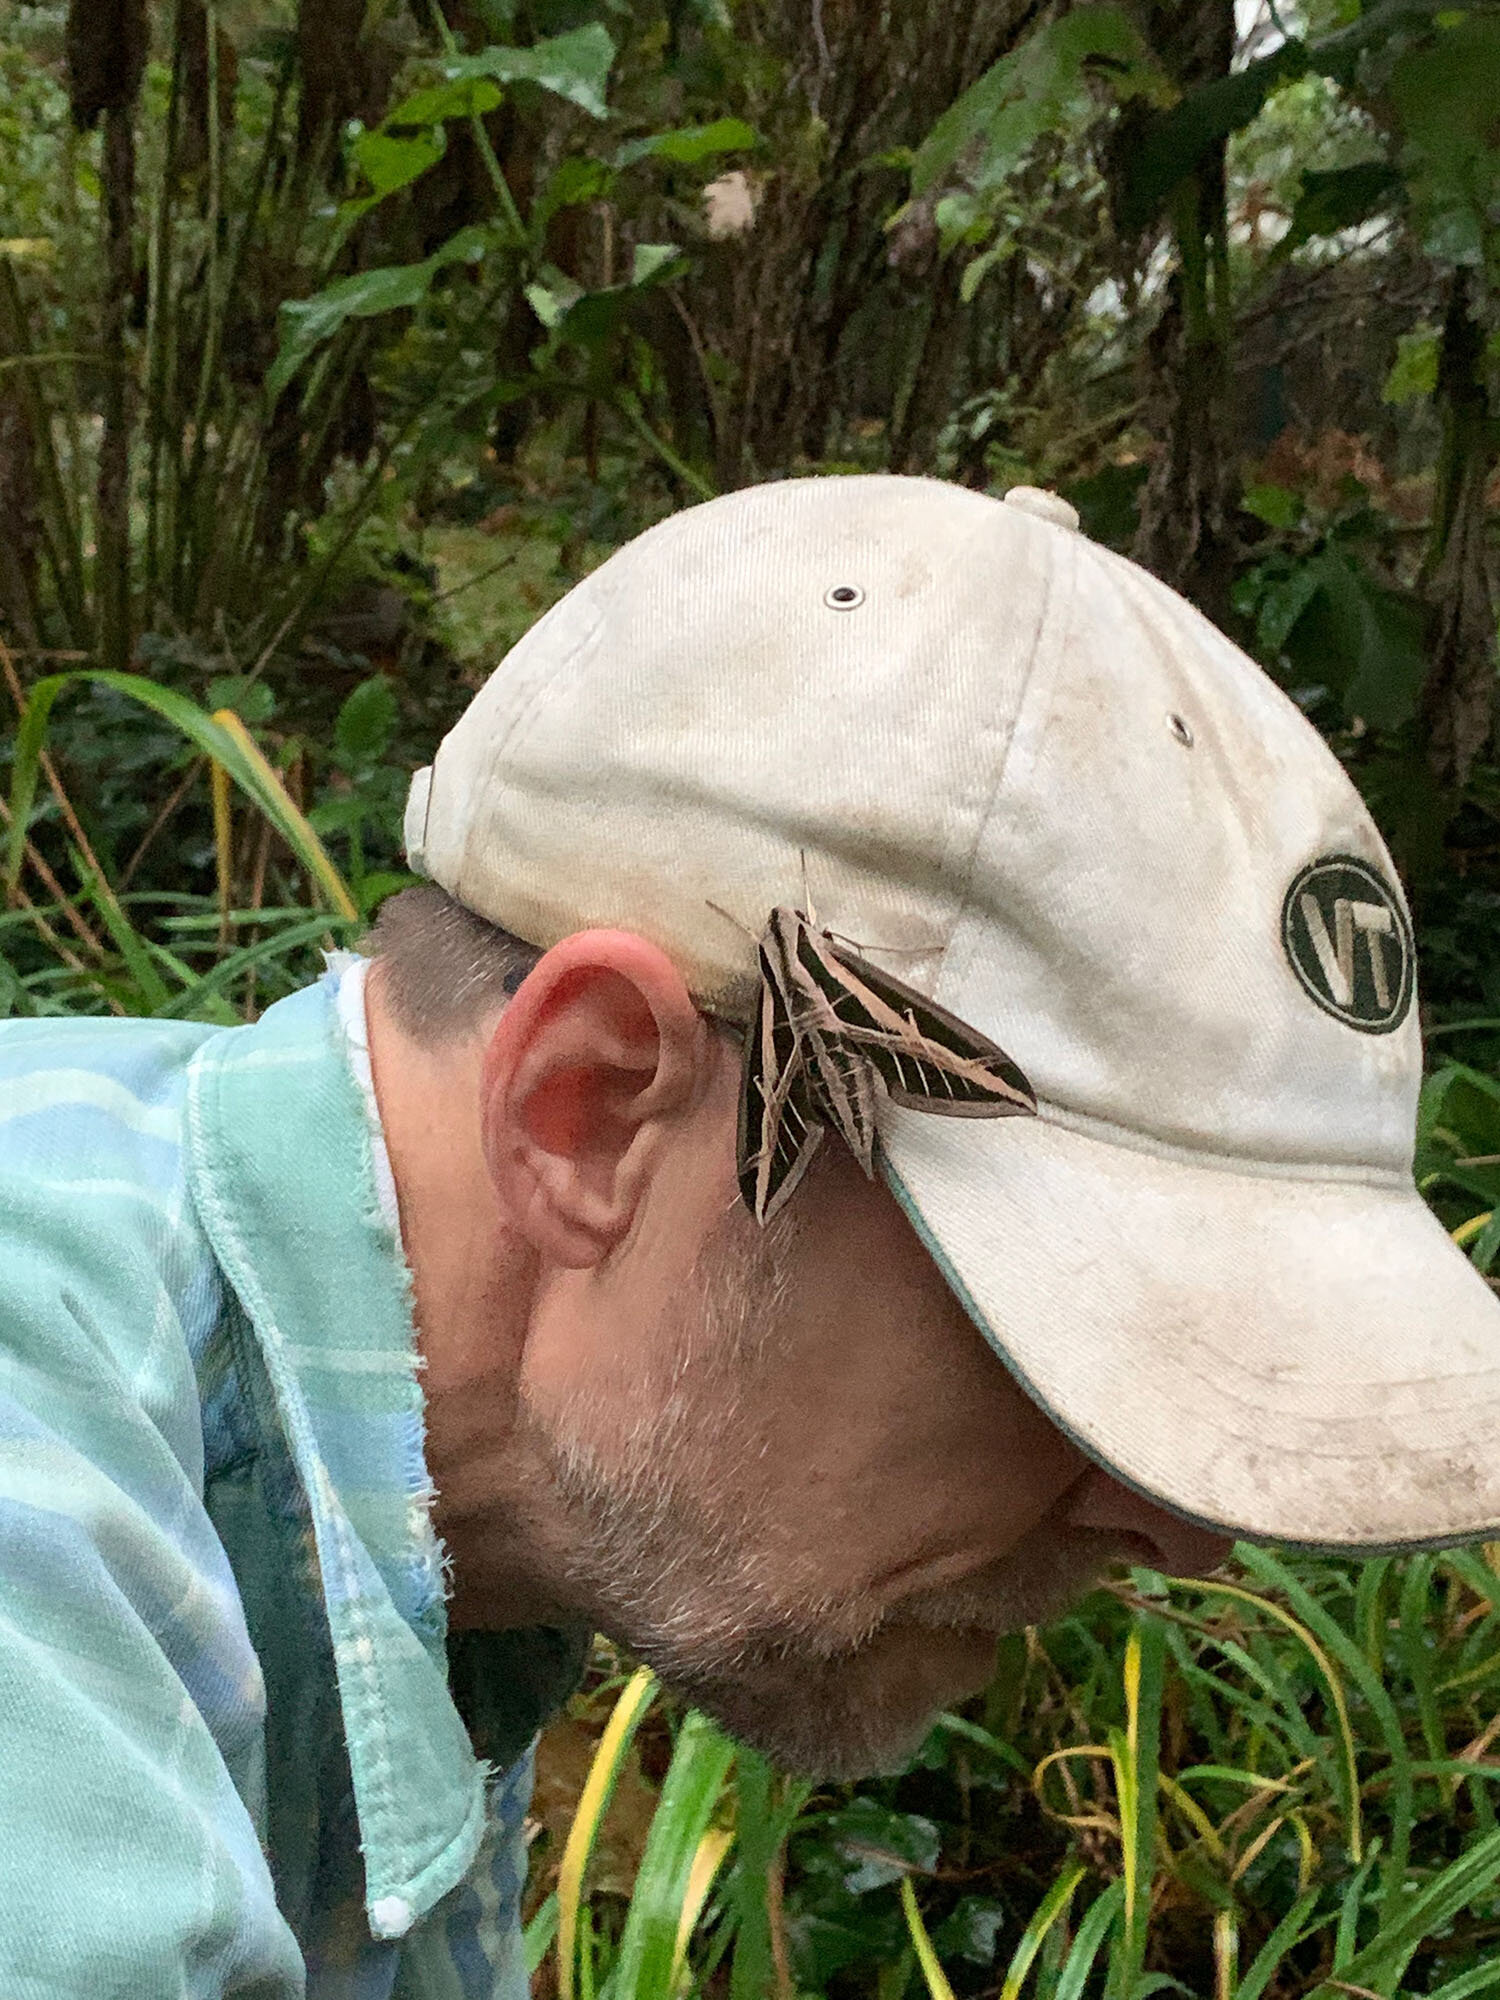 White-lined sphinx on Charles Cresson's hat